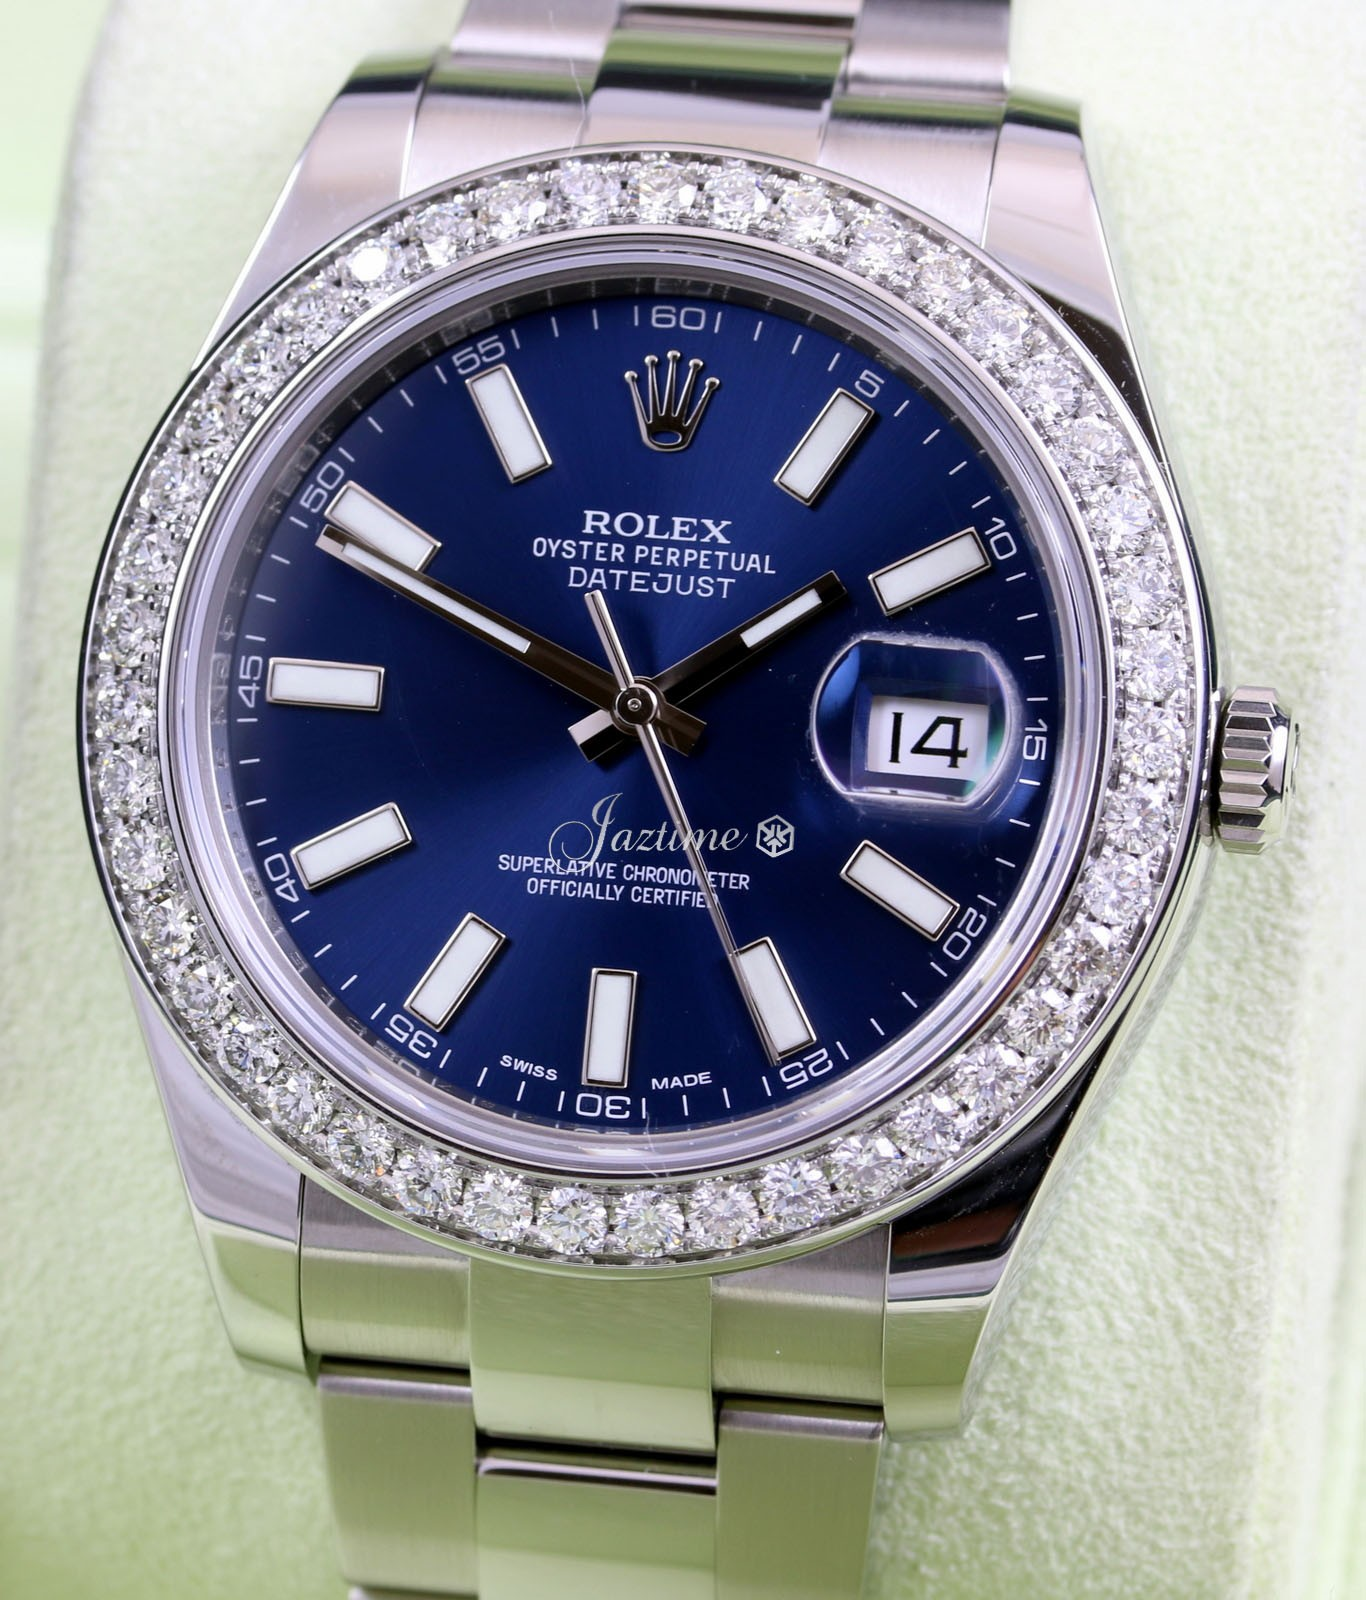 Rolex 116300 Datejust II Blue » for SALE